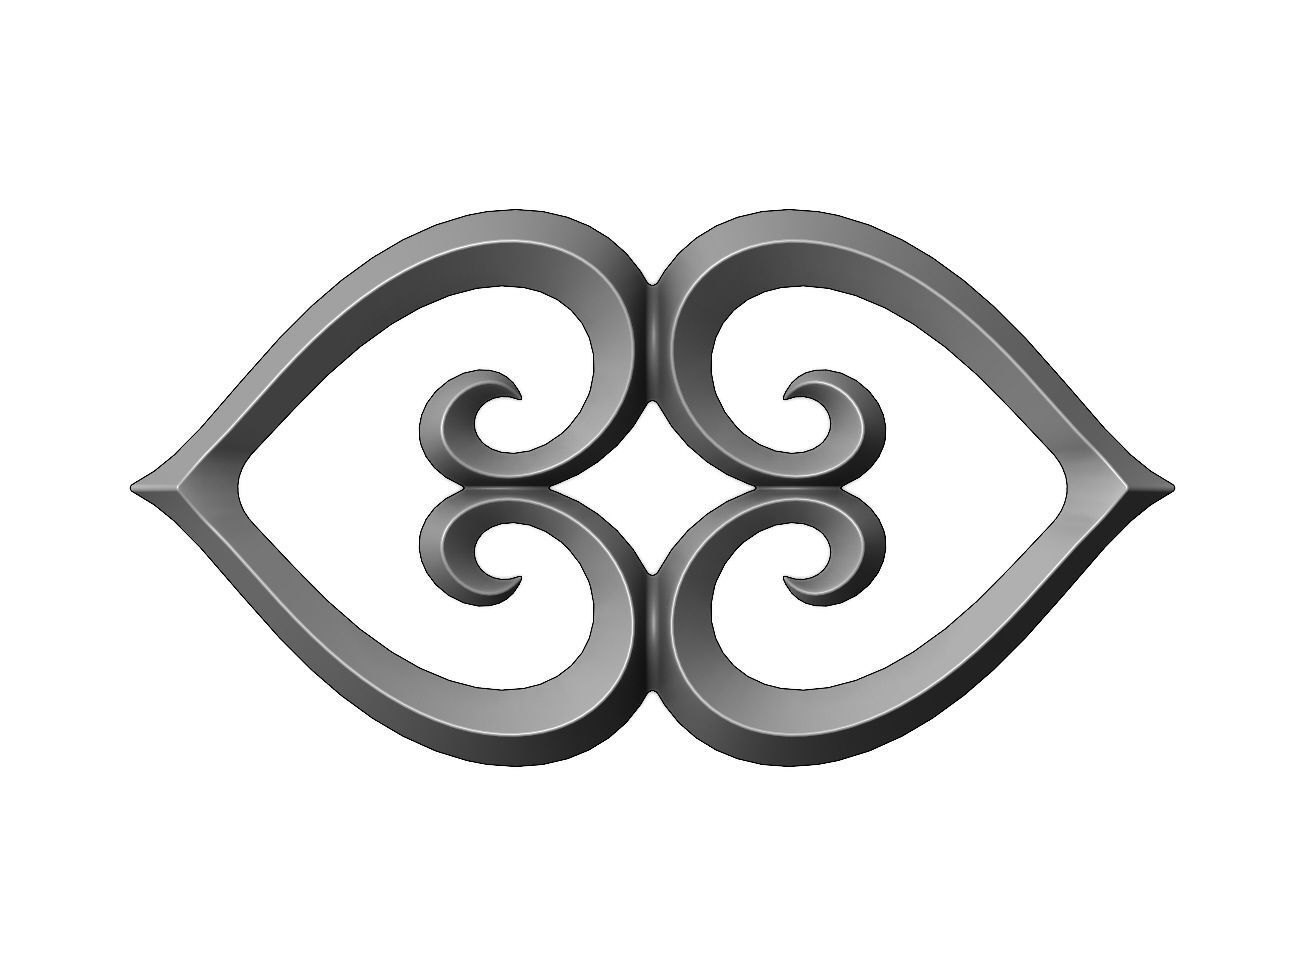 Double heart floral scroll relief